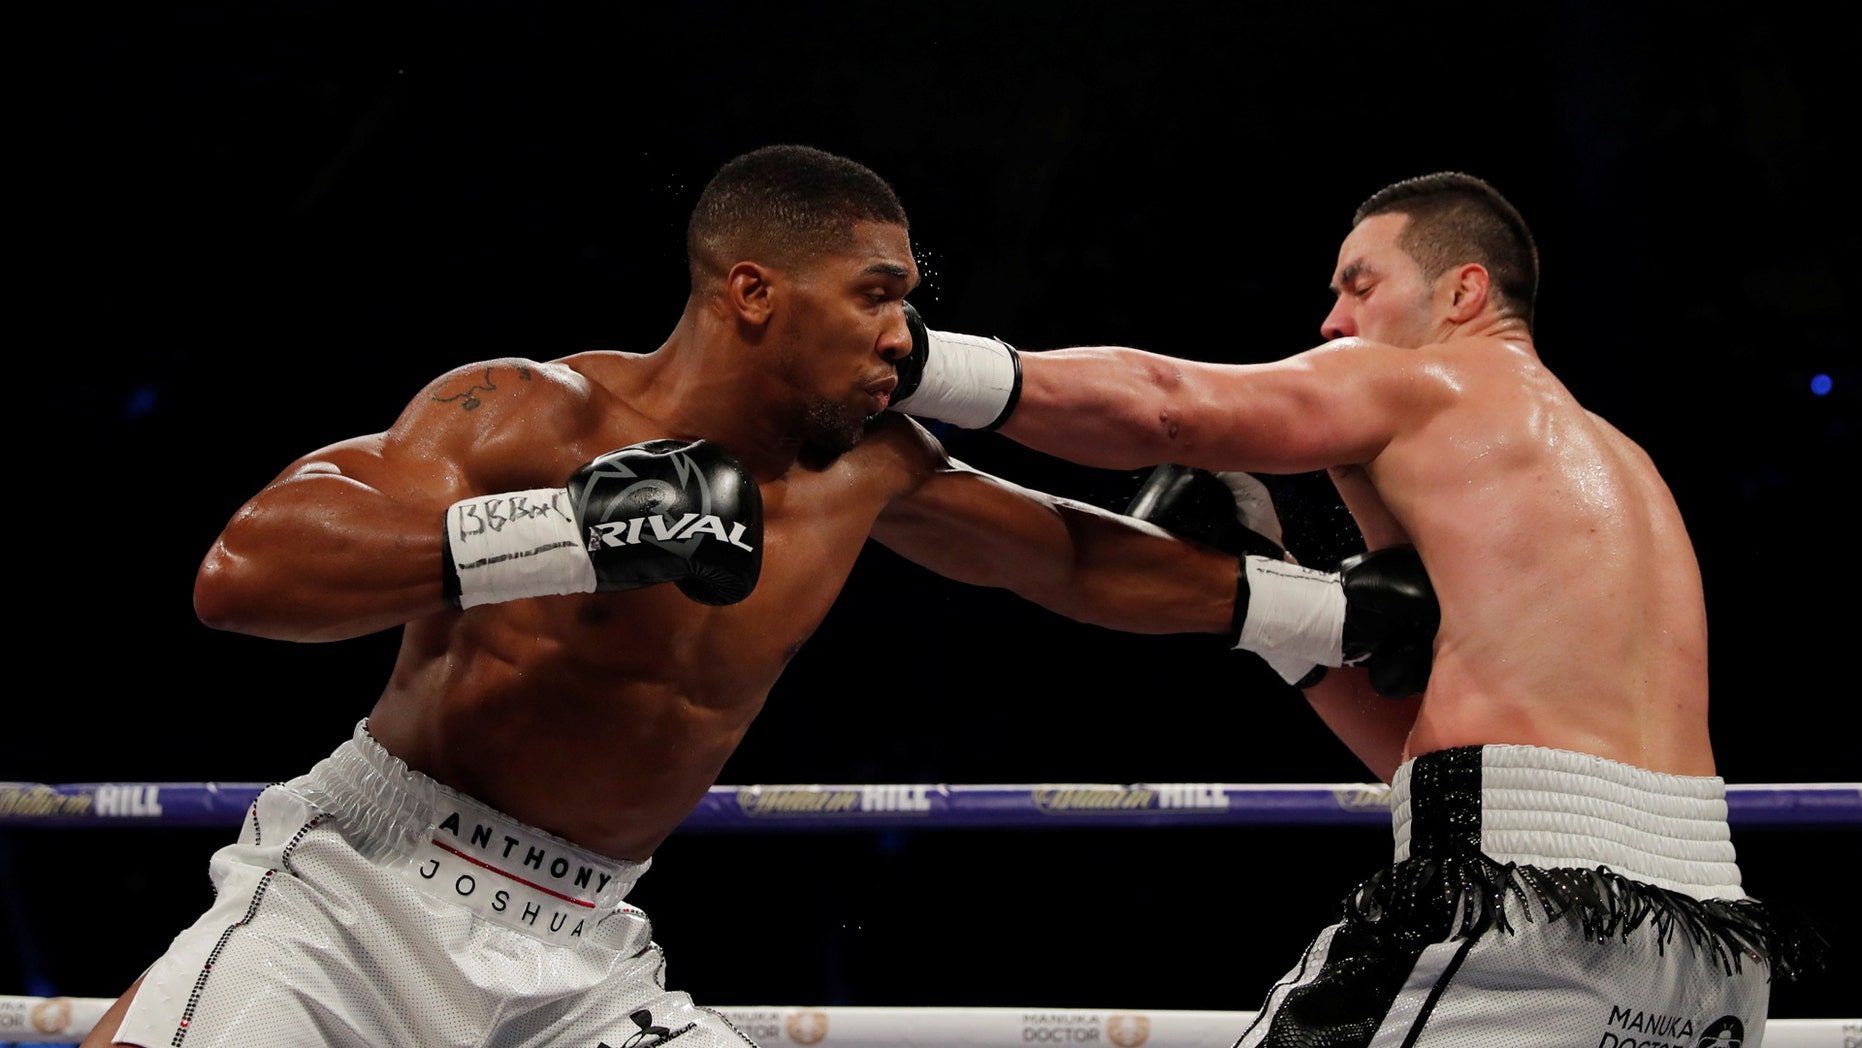 Anthony Joshua vs. Joseph Parker, the World Heavyweight Title Unification Fight, took place at Principality Stadium, Cardiff, Britain, on March 31, 2018.